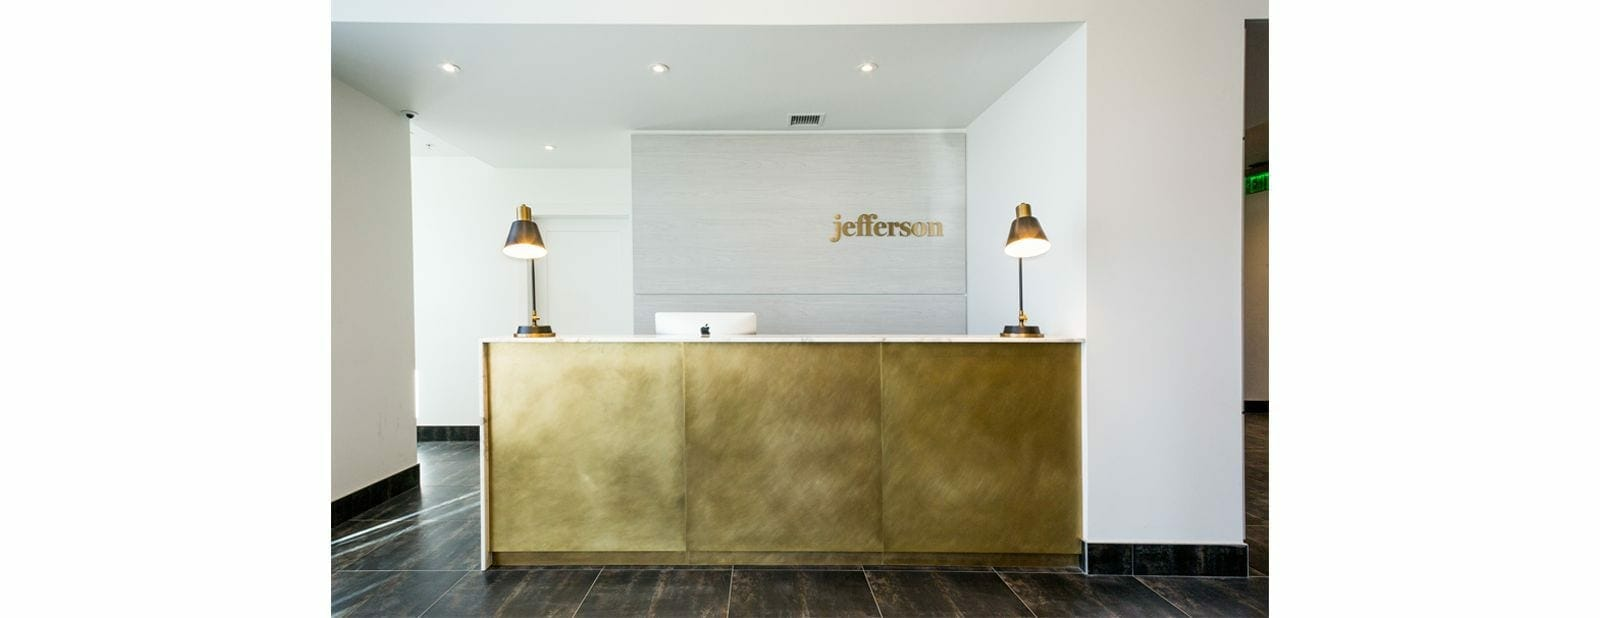 presidential city jefferson reception desk 3